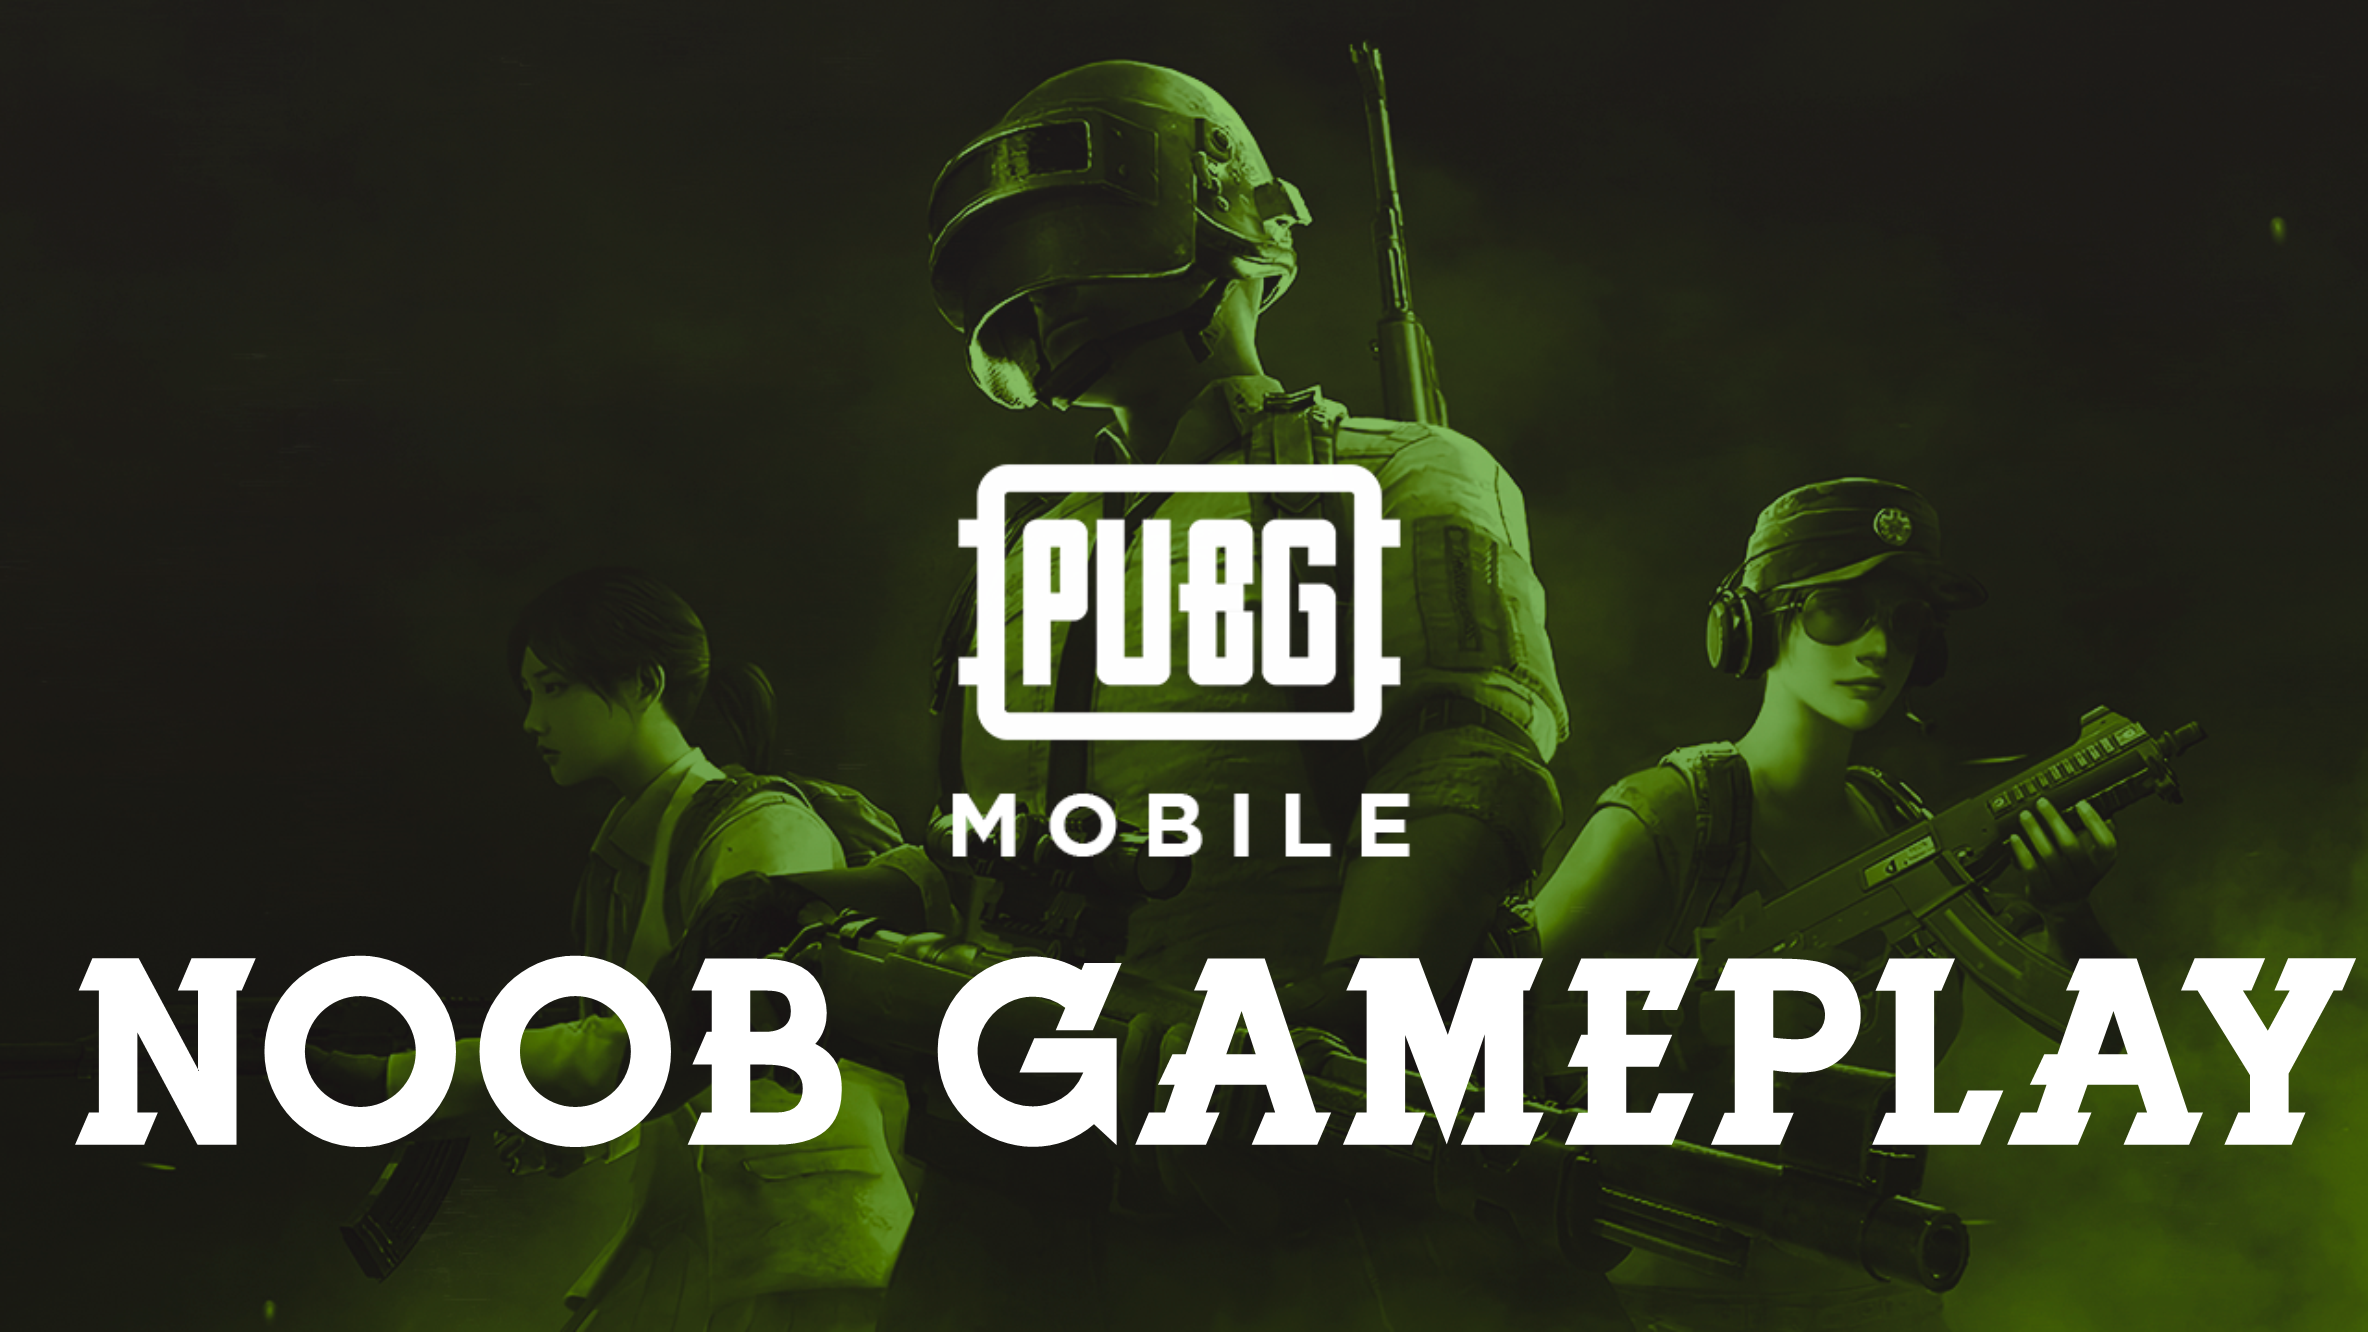 Pubg Noob Gameplay Funny Moments Pubg Mobile 2020 Noob Funny Moments Gameplay